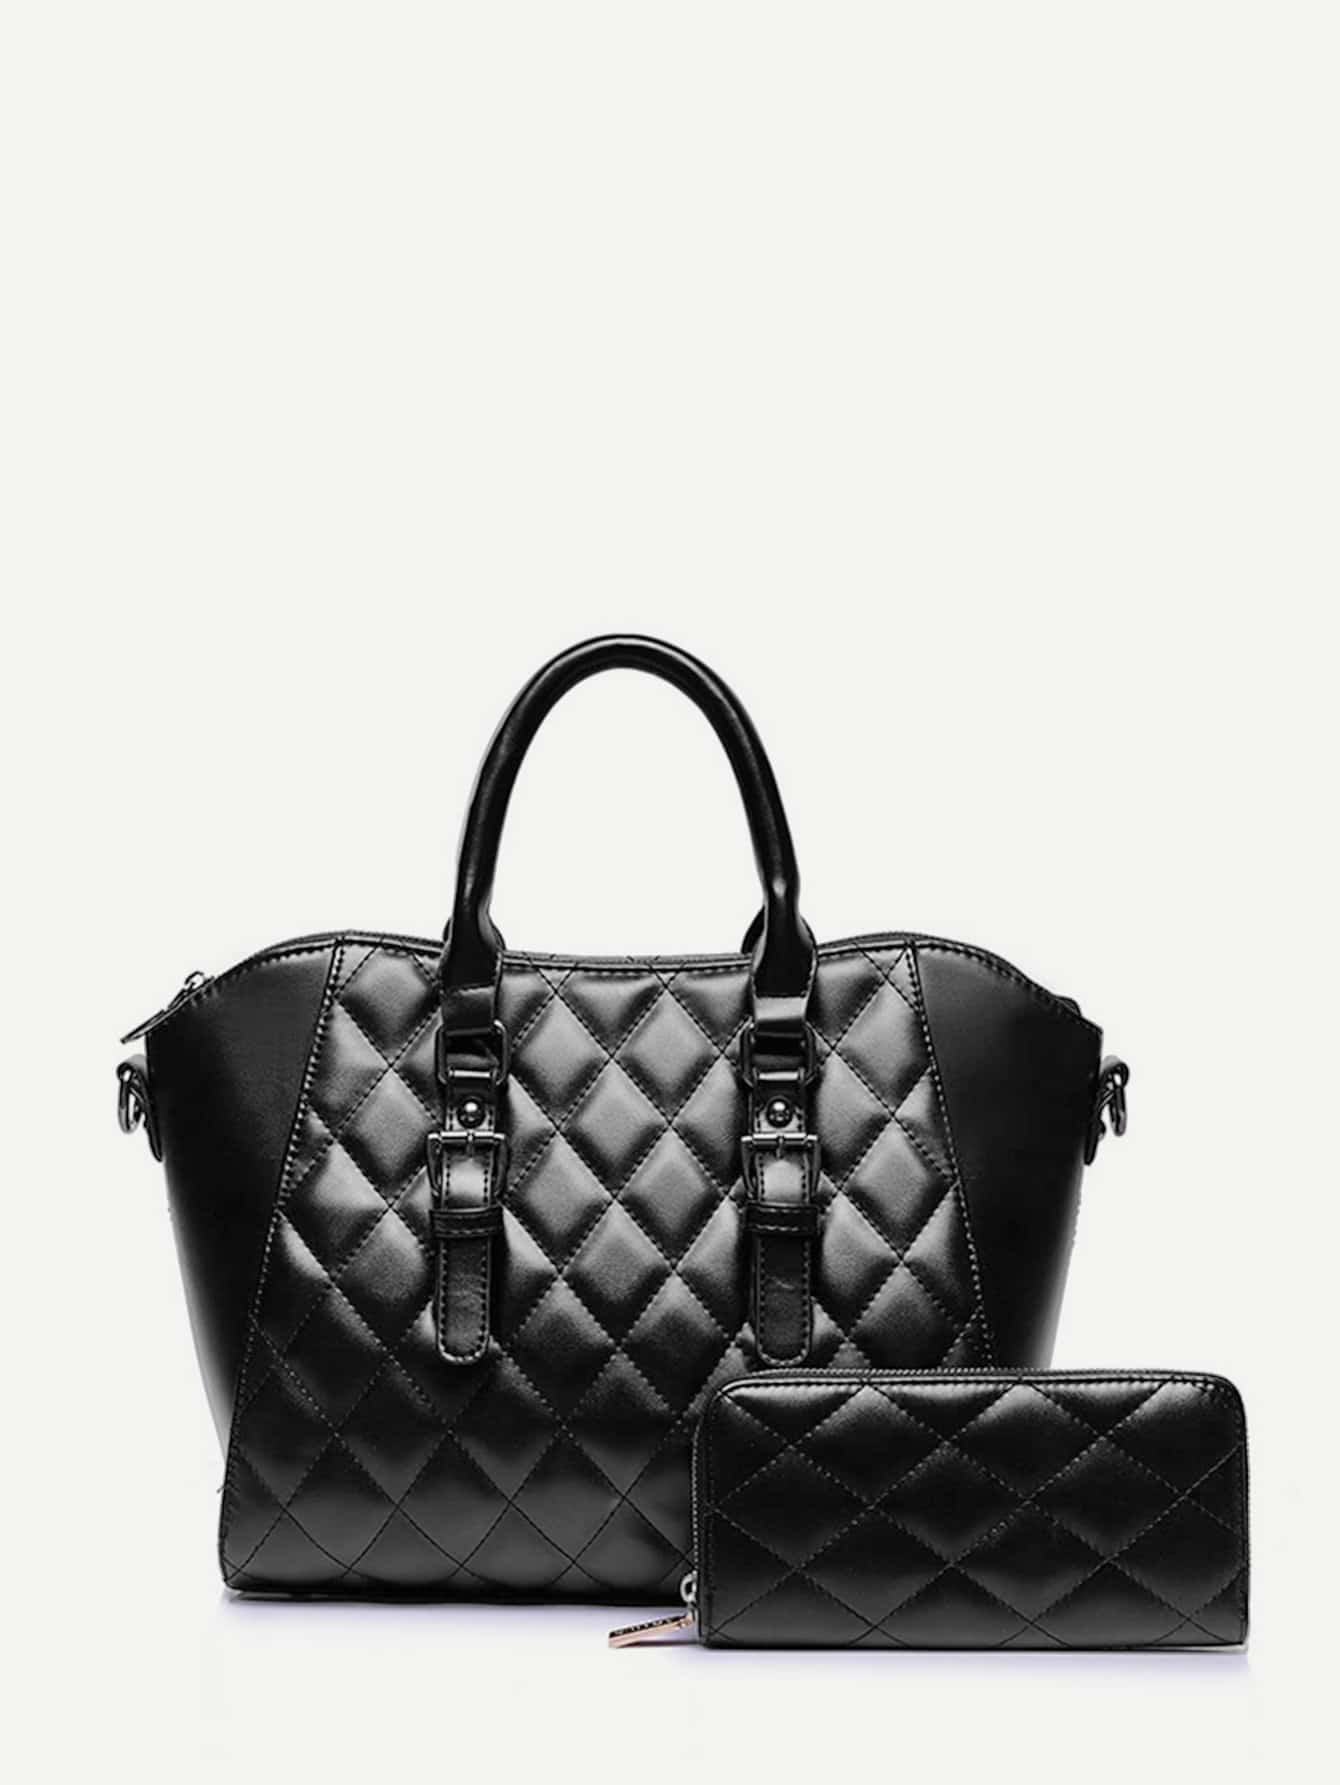 Double Buckle Quilted Tote Bag With Purse -SheIn(Sheinside) : quilted tote bag - Adamdwight.com